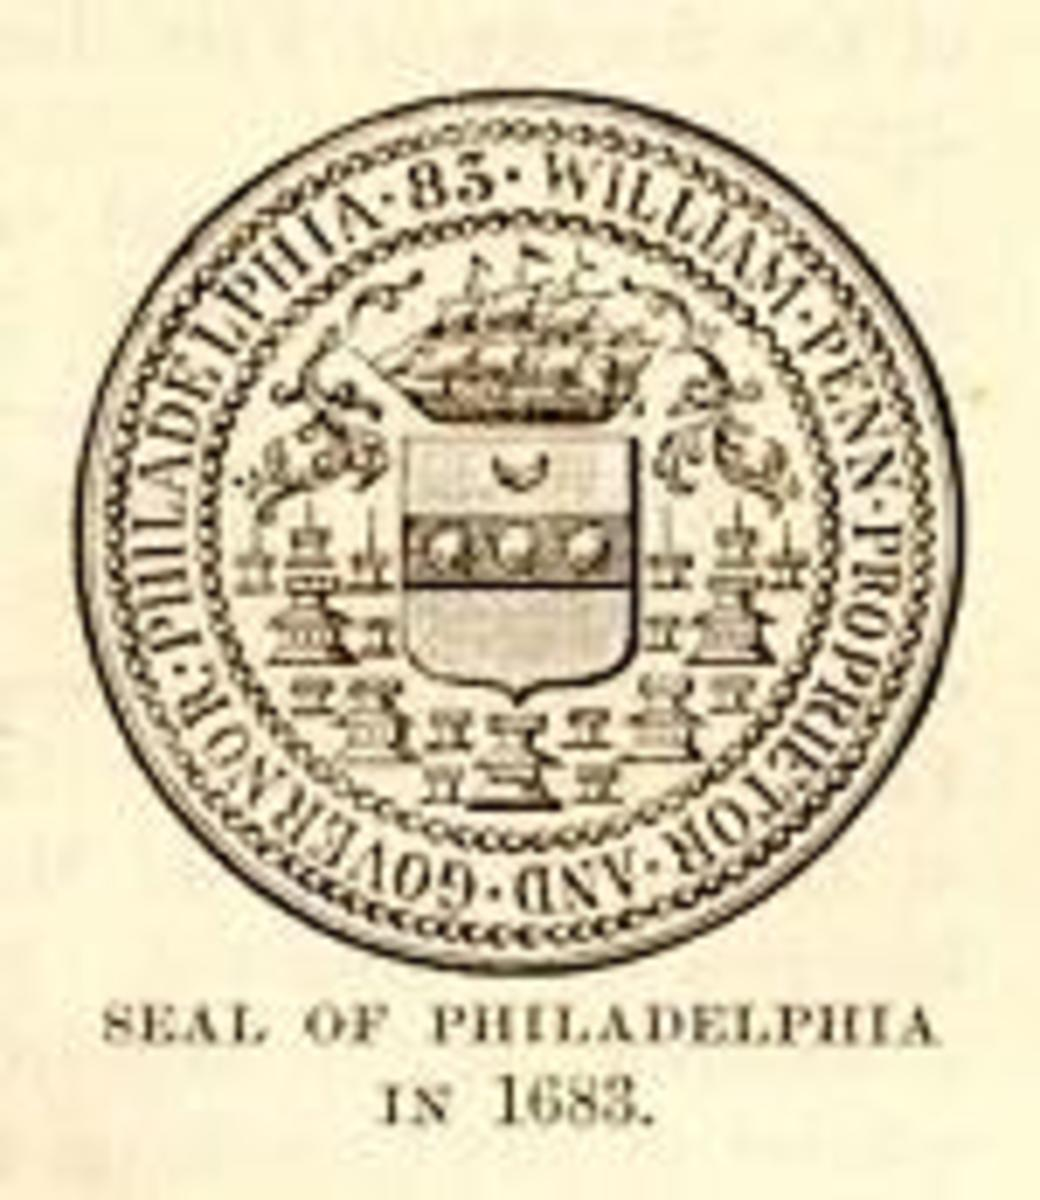 Located in Philadelphia (public domain image). Best nurse's training program in America for Adult and Pediatric Nursing.